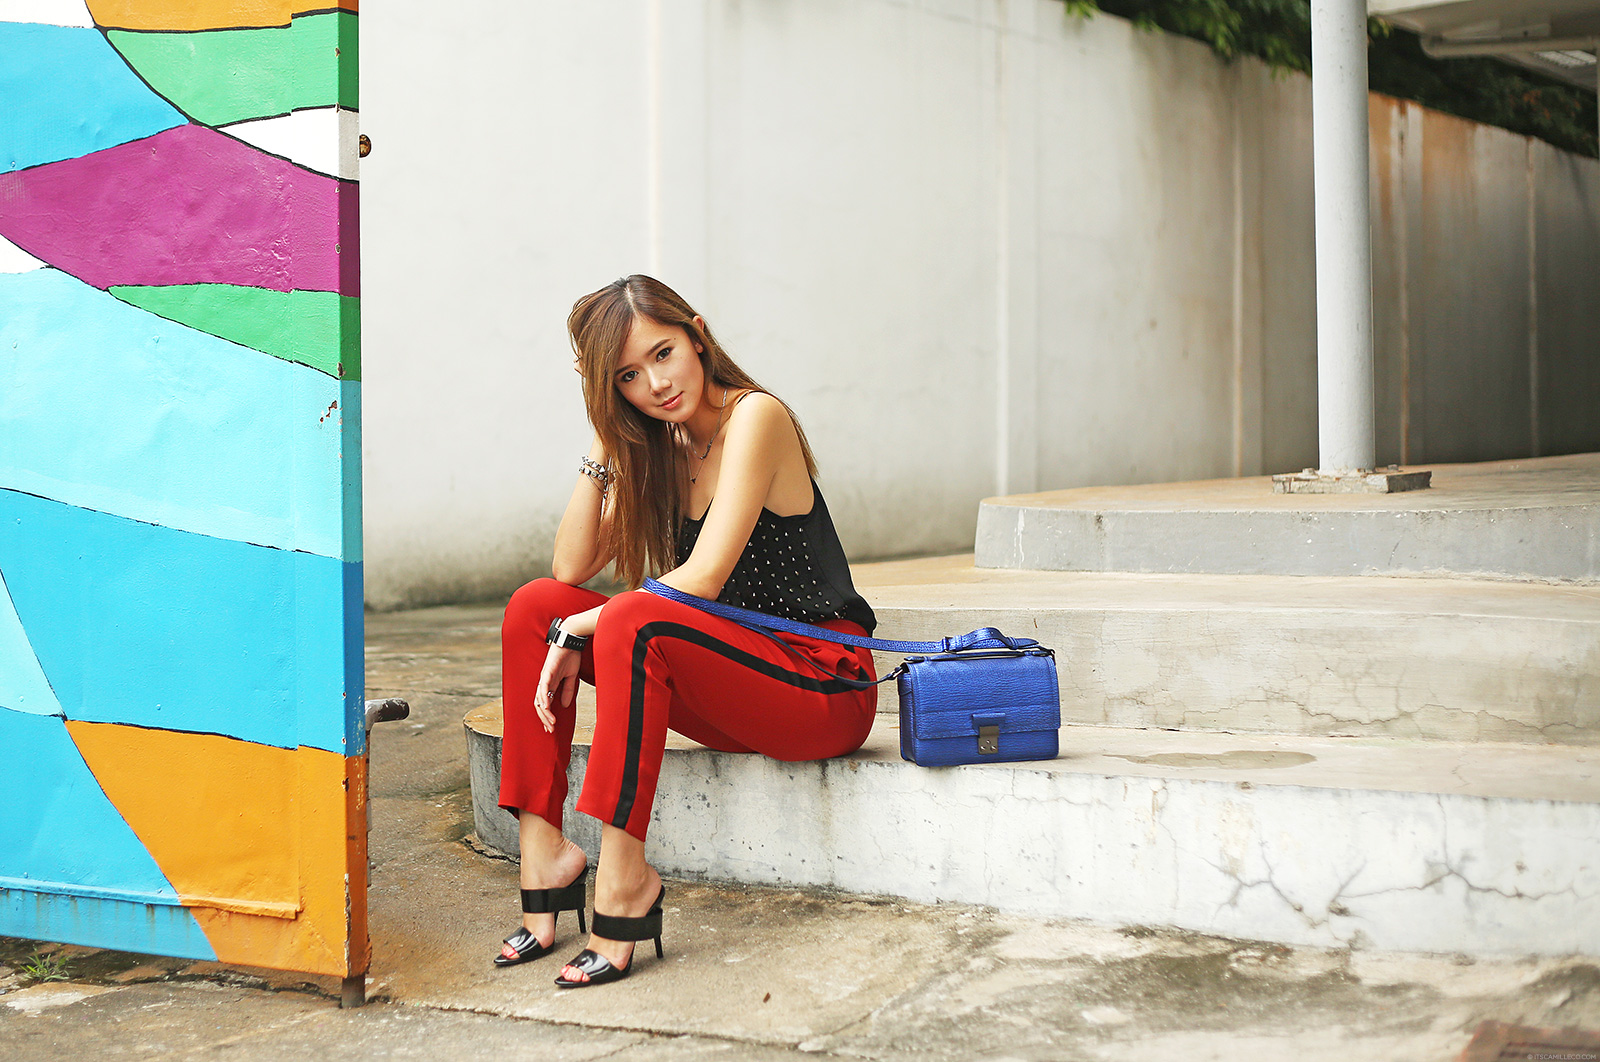 H&M Camisole, Zara Trousers, 3.1 Phillip Lim Pashli Mini Messenger, Alexander Wang Masha Heels, Sporty Chic on www.itscamilleco.com